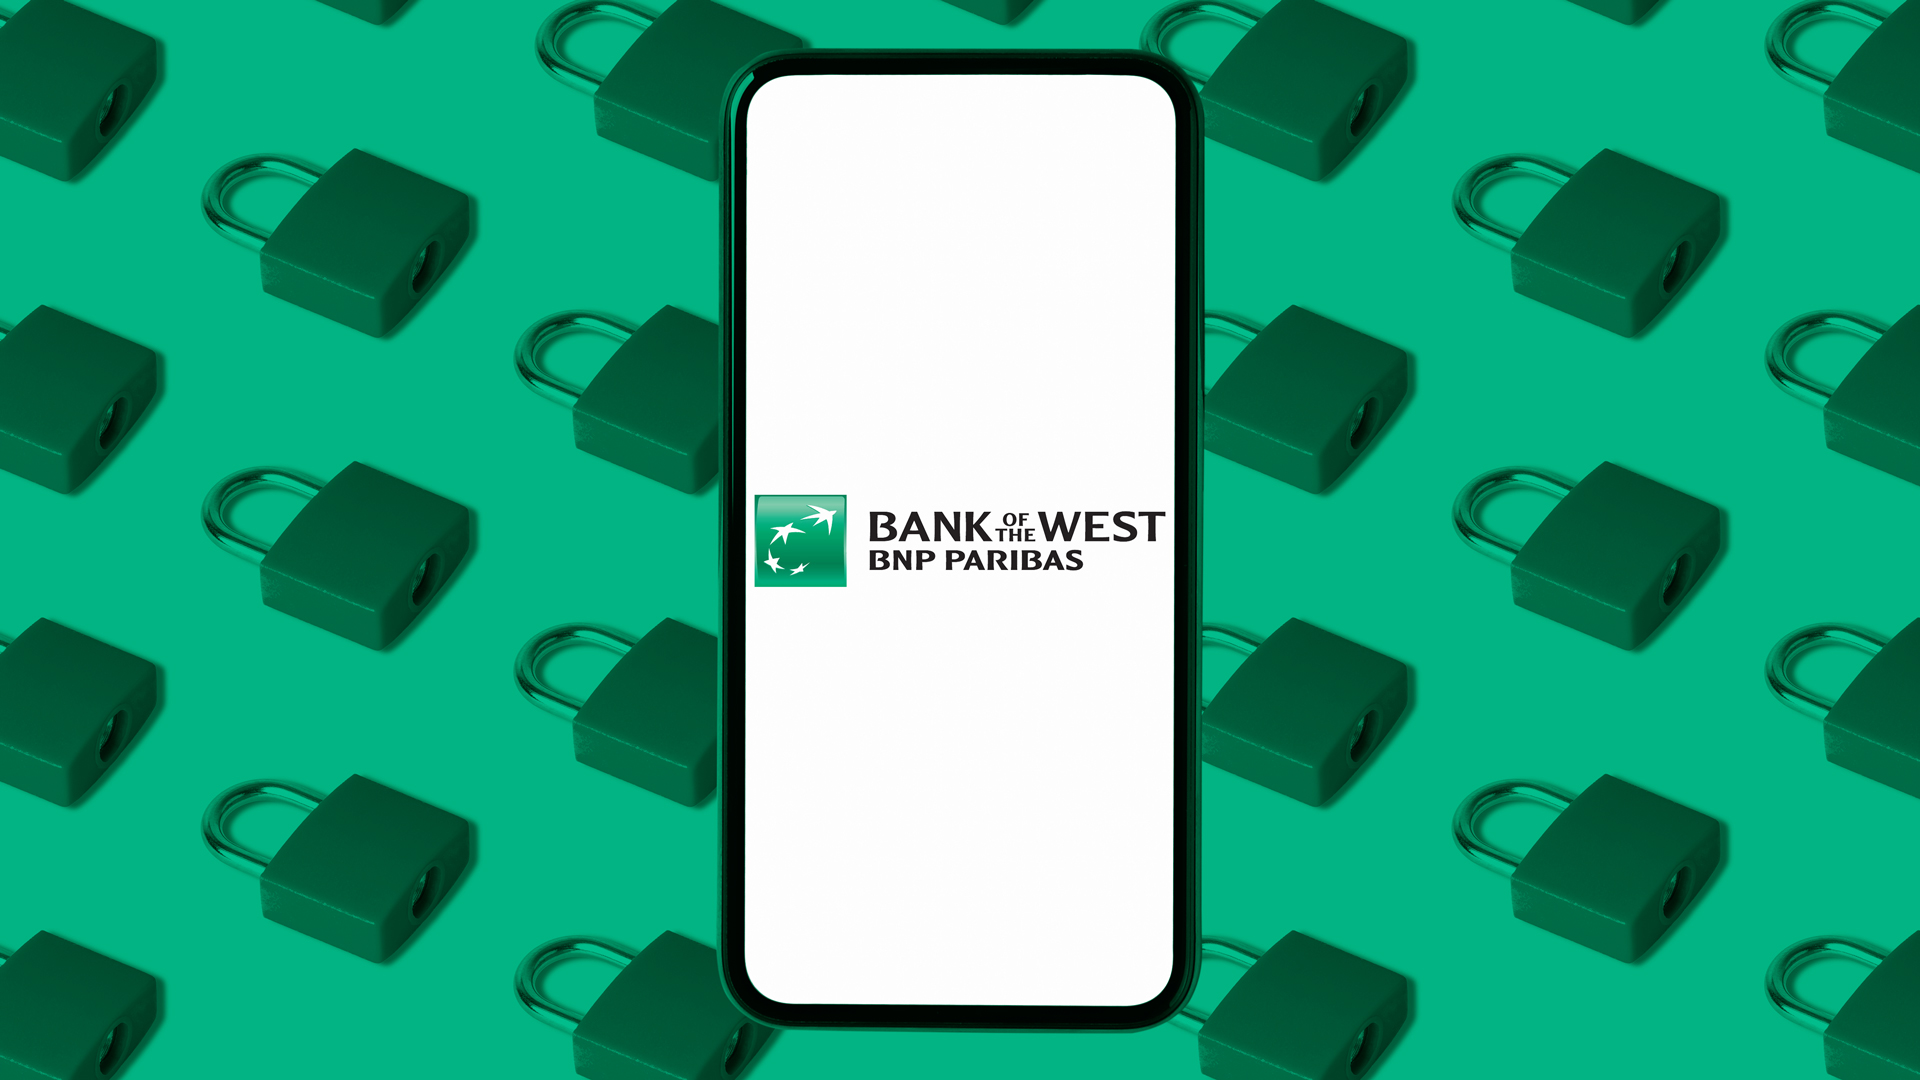 Bank of the West BNP Paribas bank login